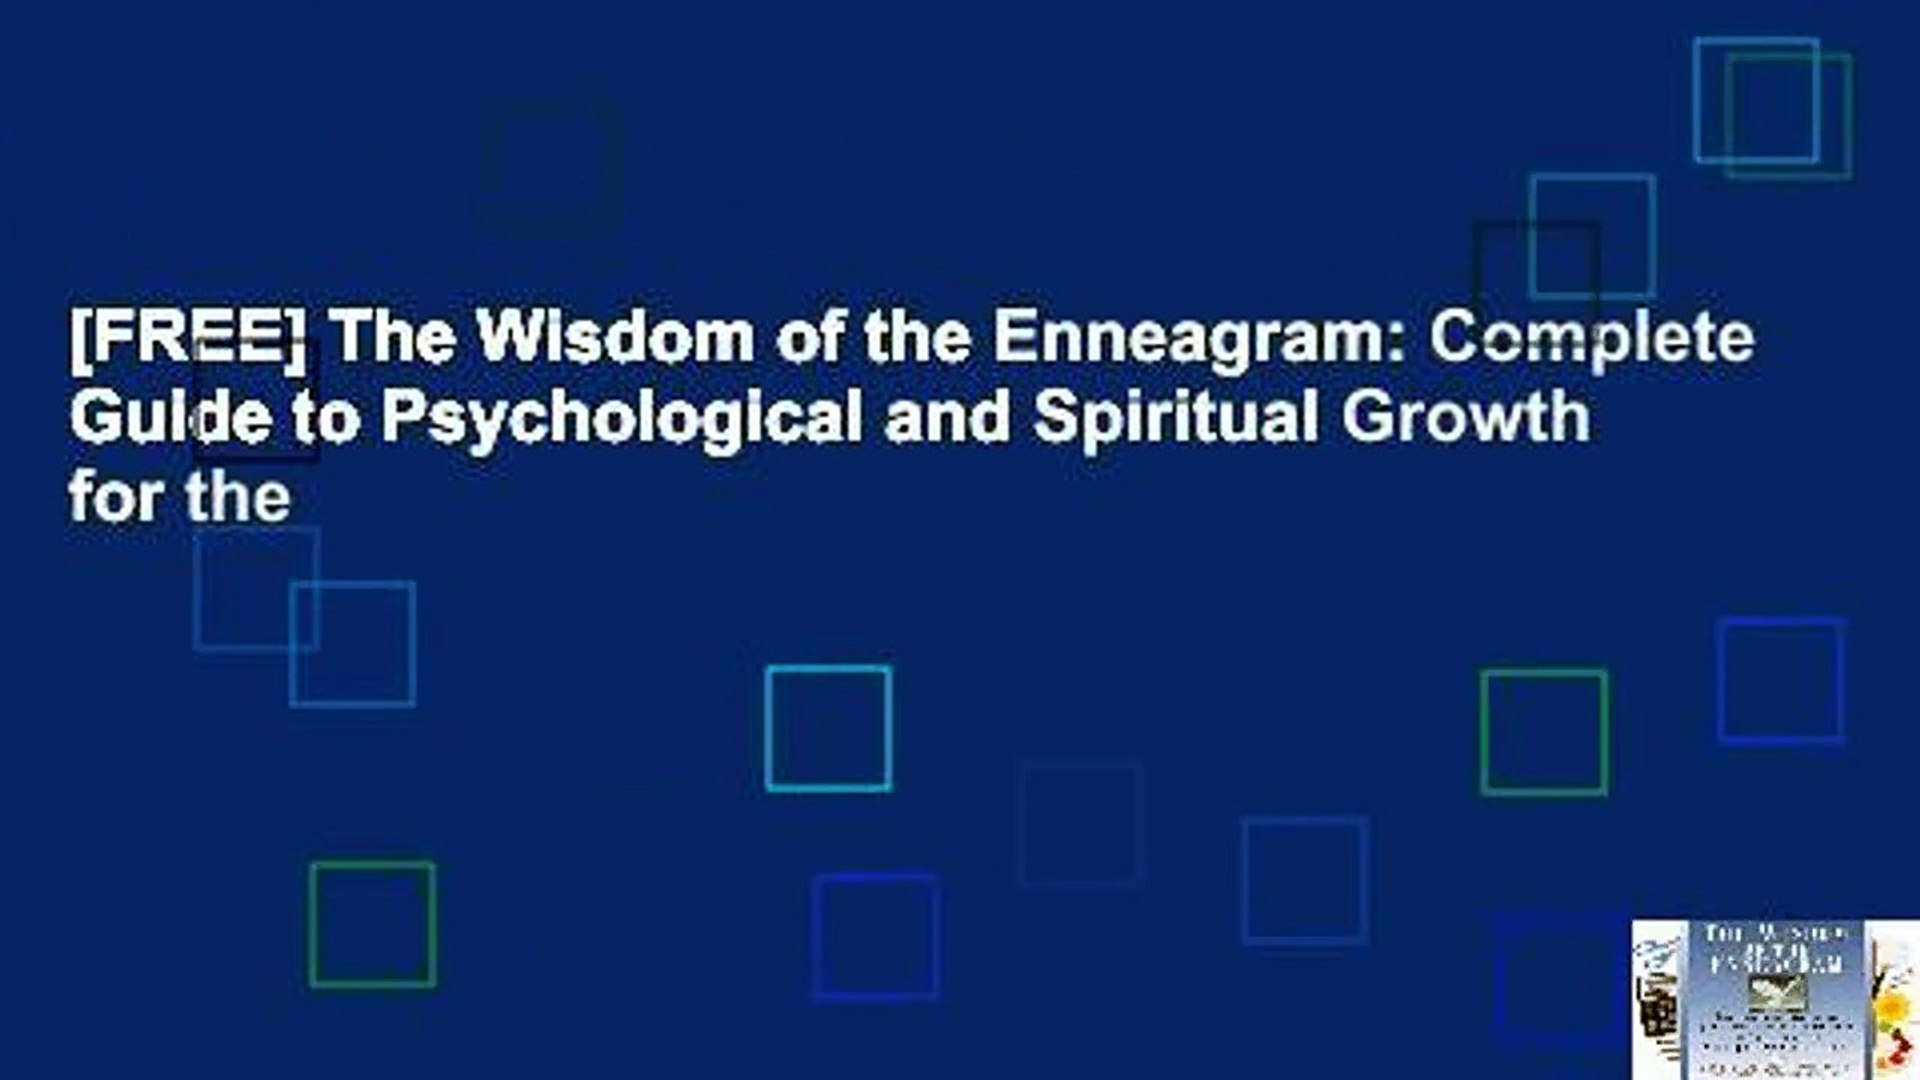 [FREE] The Wisdom of the Enneagram: Complete Guide to Psychological and Spiritual Growth for the